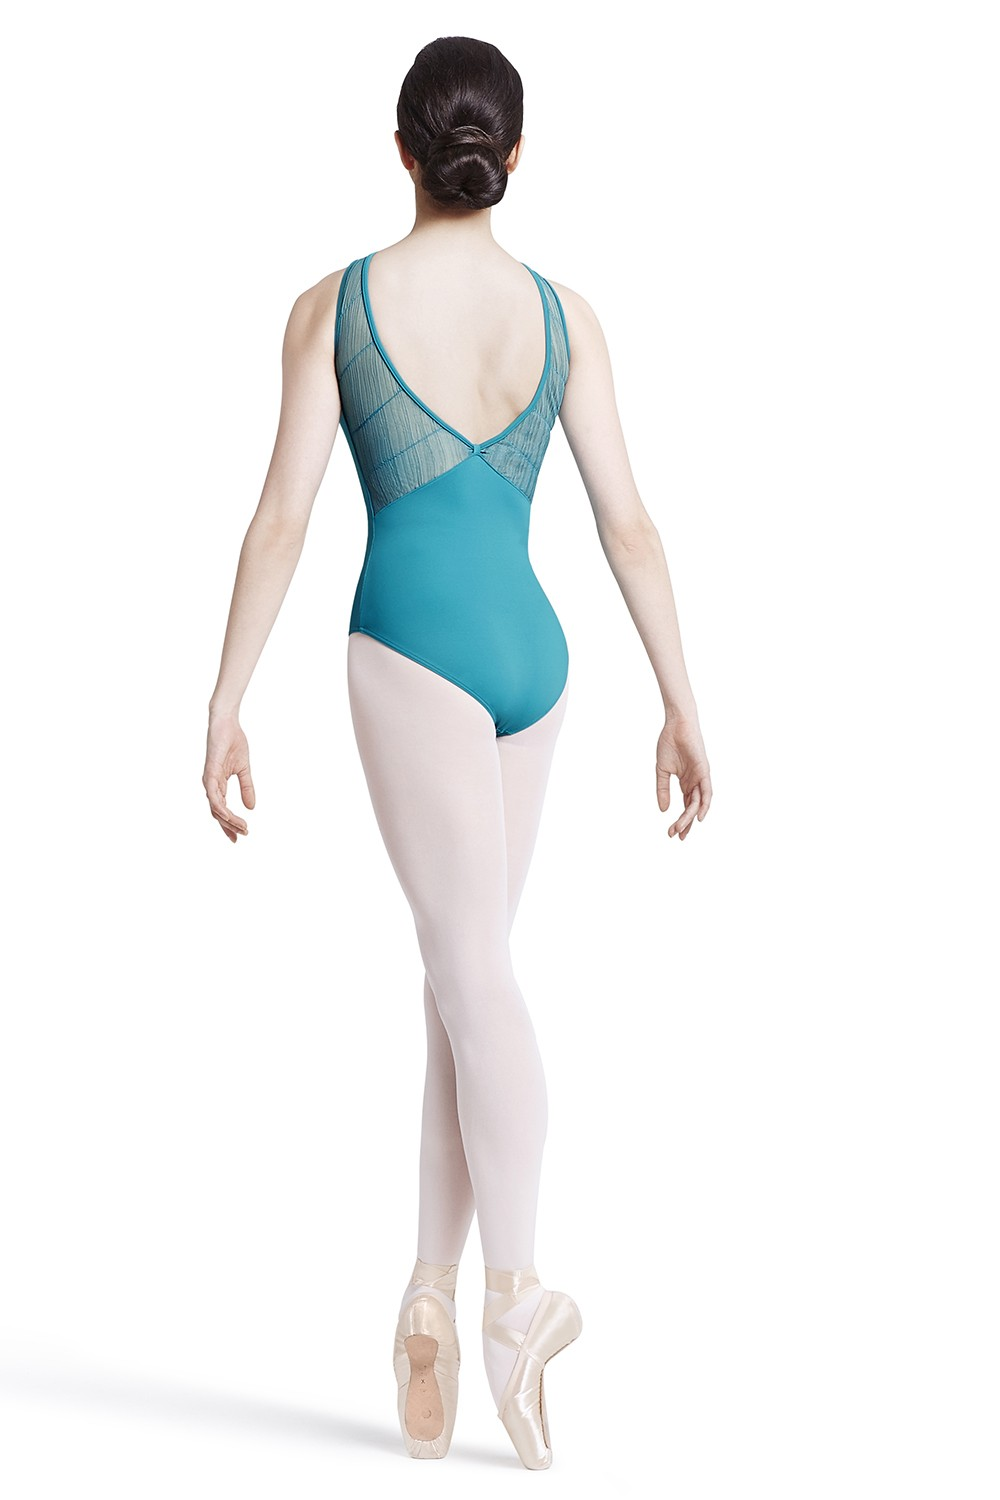 Body A Spalline Larghe Con Fiocco Sul Retro Women's Dance Leotards